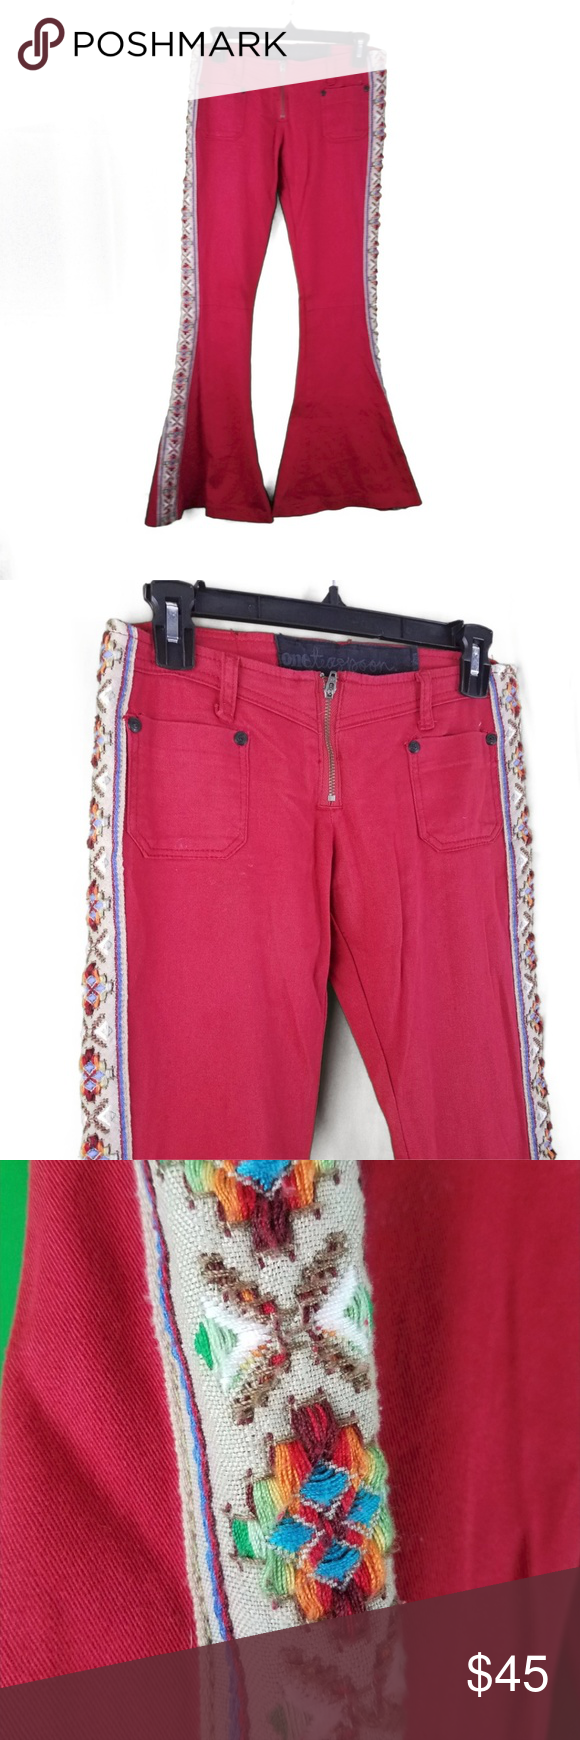 One Teaspoon Red Bell Bottom Jeans Xs S Embroidery Aztec Fashion Clothes Design Bell Bottom Jeans